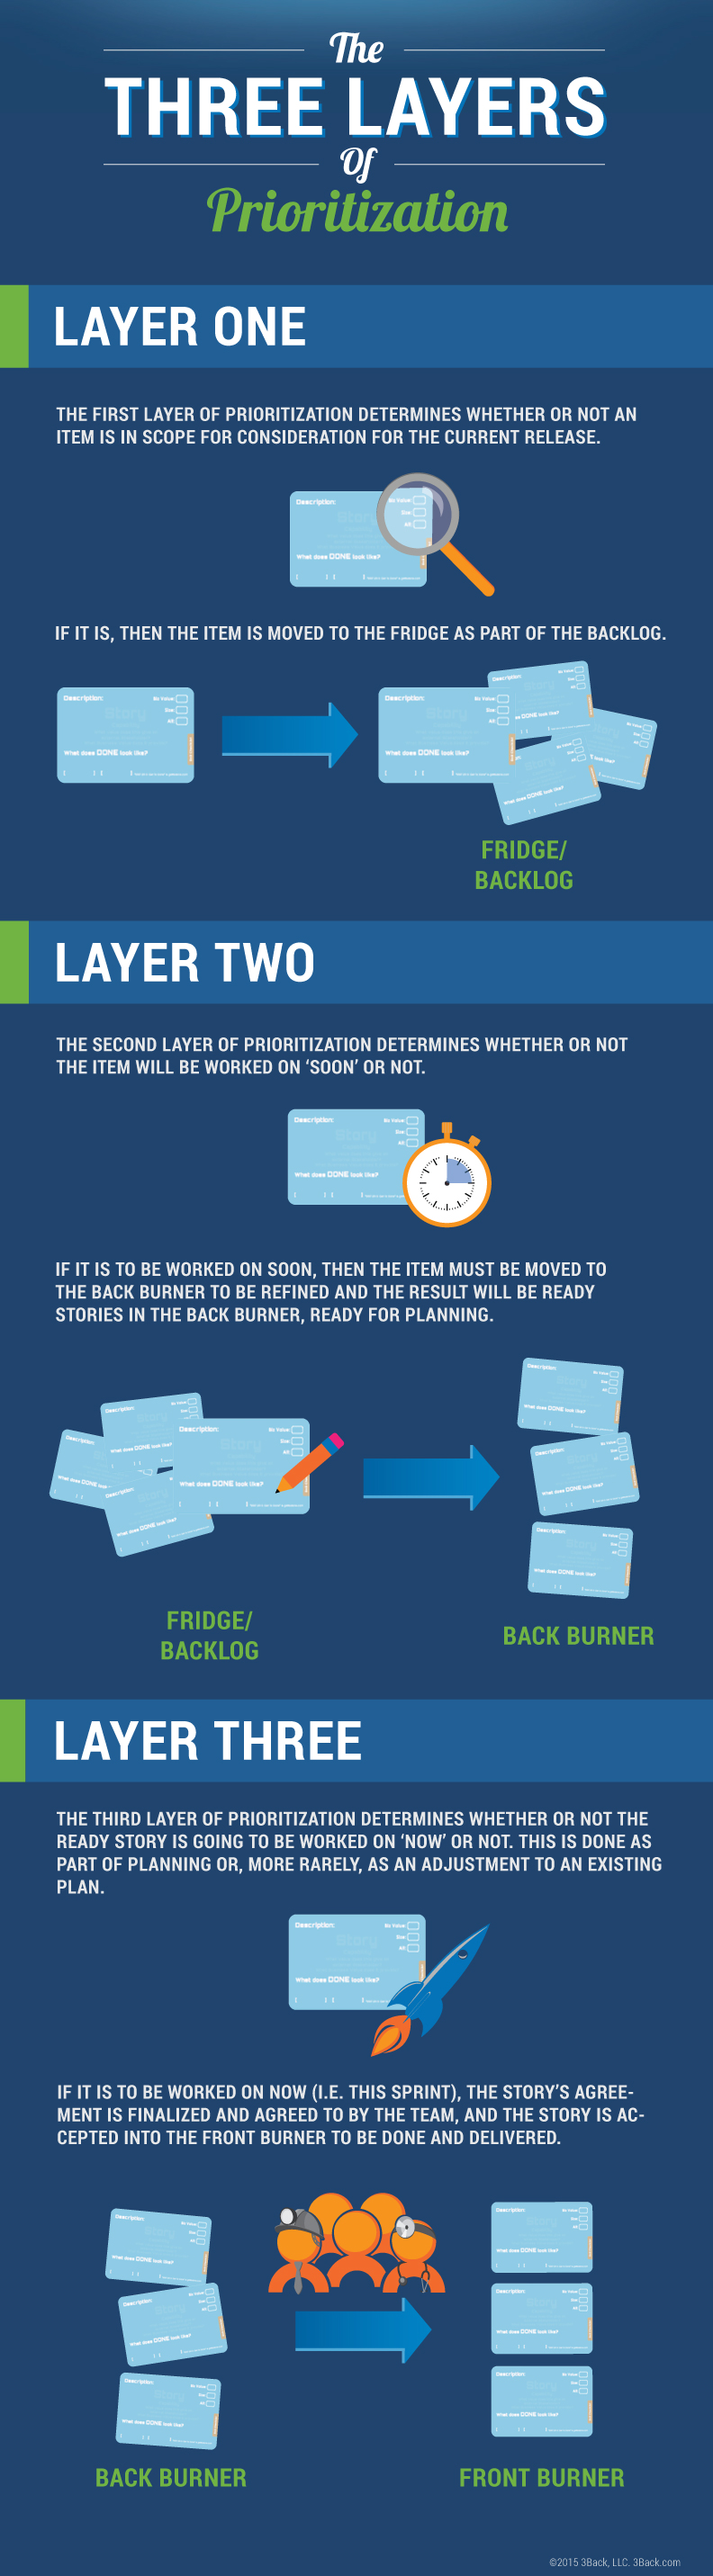 Three Layers of Prioritization - 3Back Scrum and Agile Blog